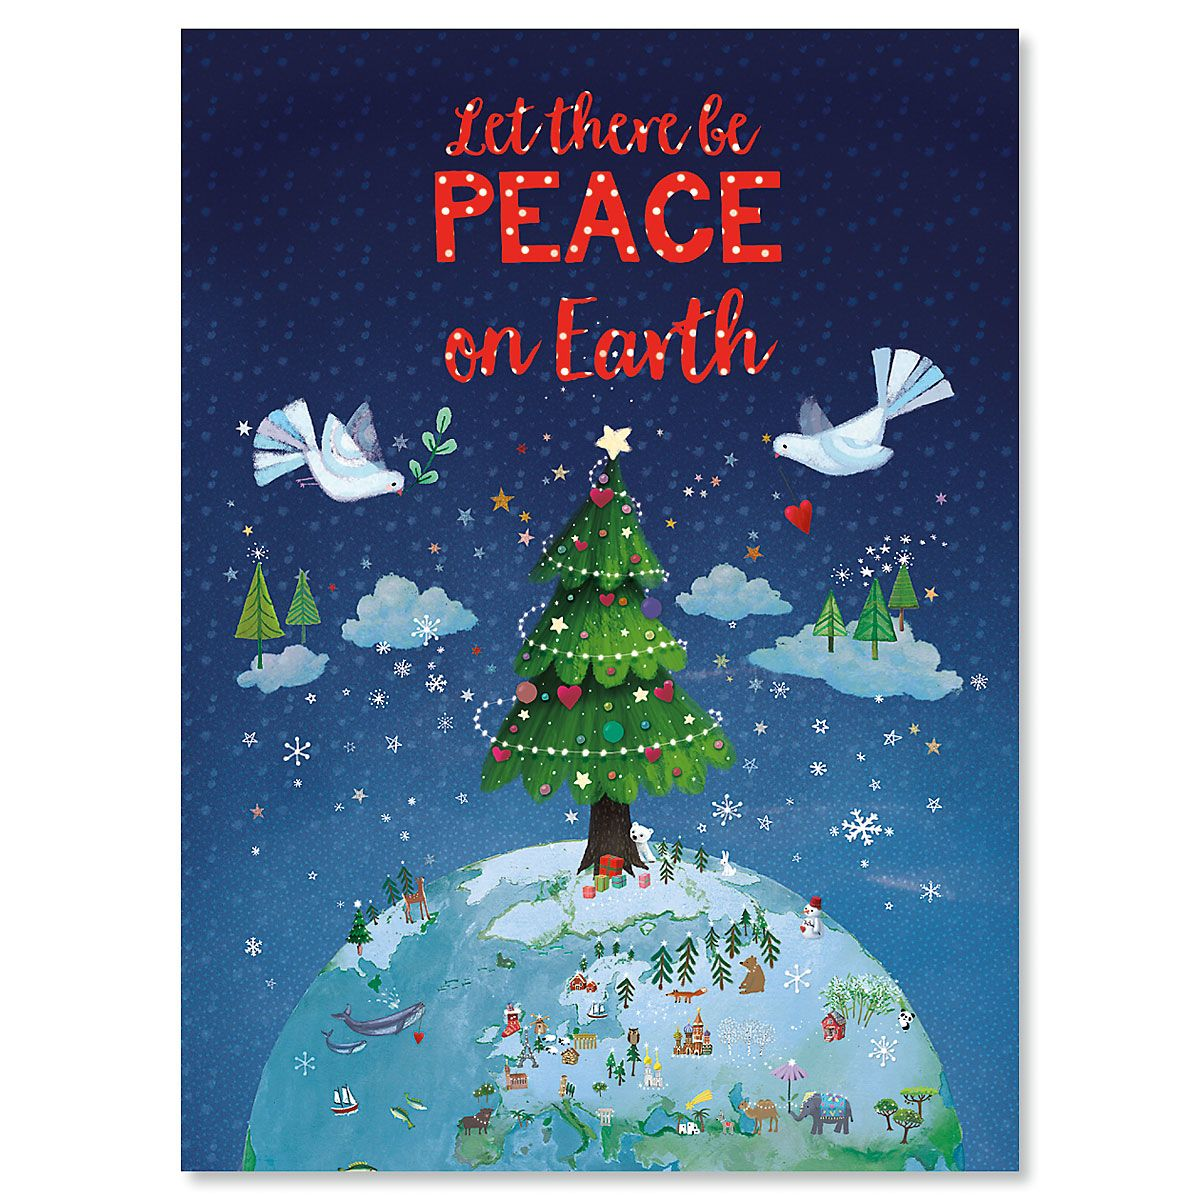 Let There Be Peace Personalized Christmas Cards - Set of 18